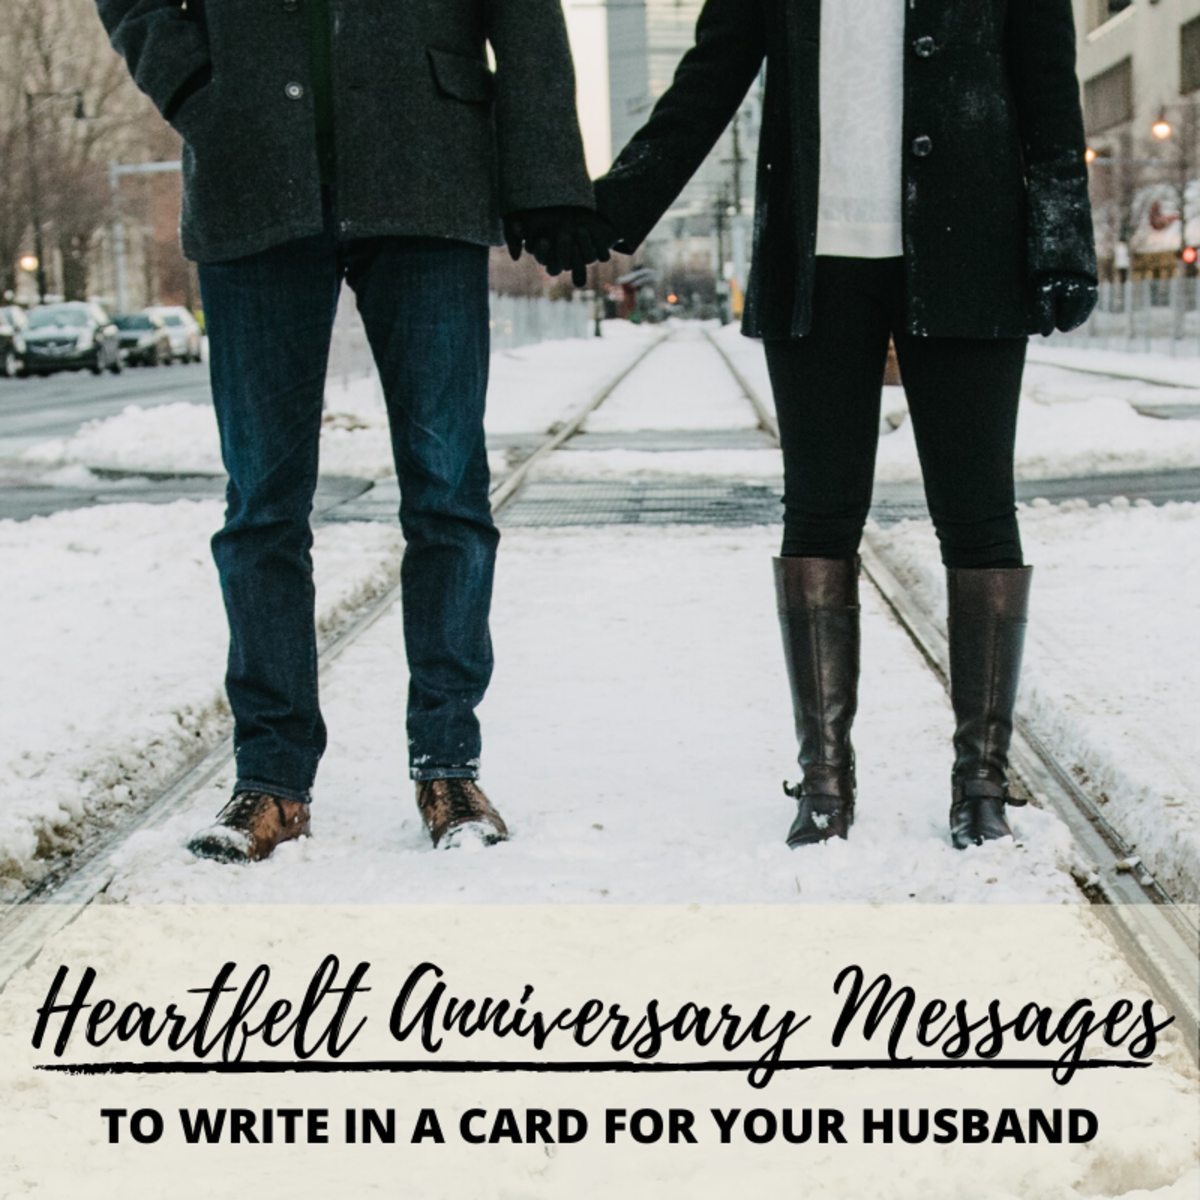 Want to write a romantic anniversary card for your husband? Check out the examples below for ideas and inspiration.